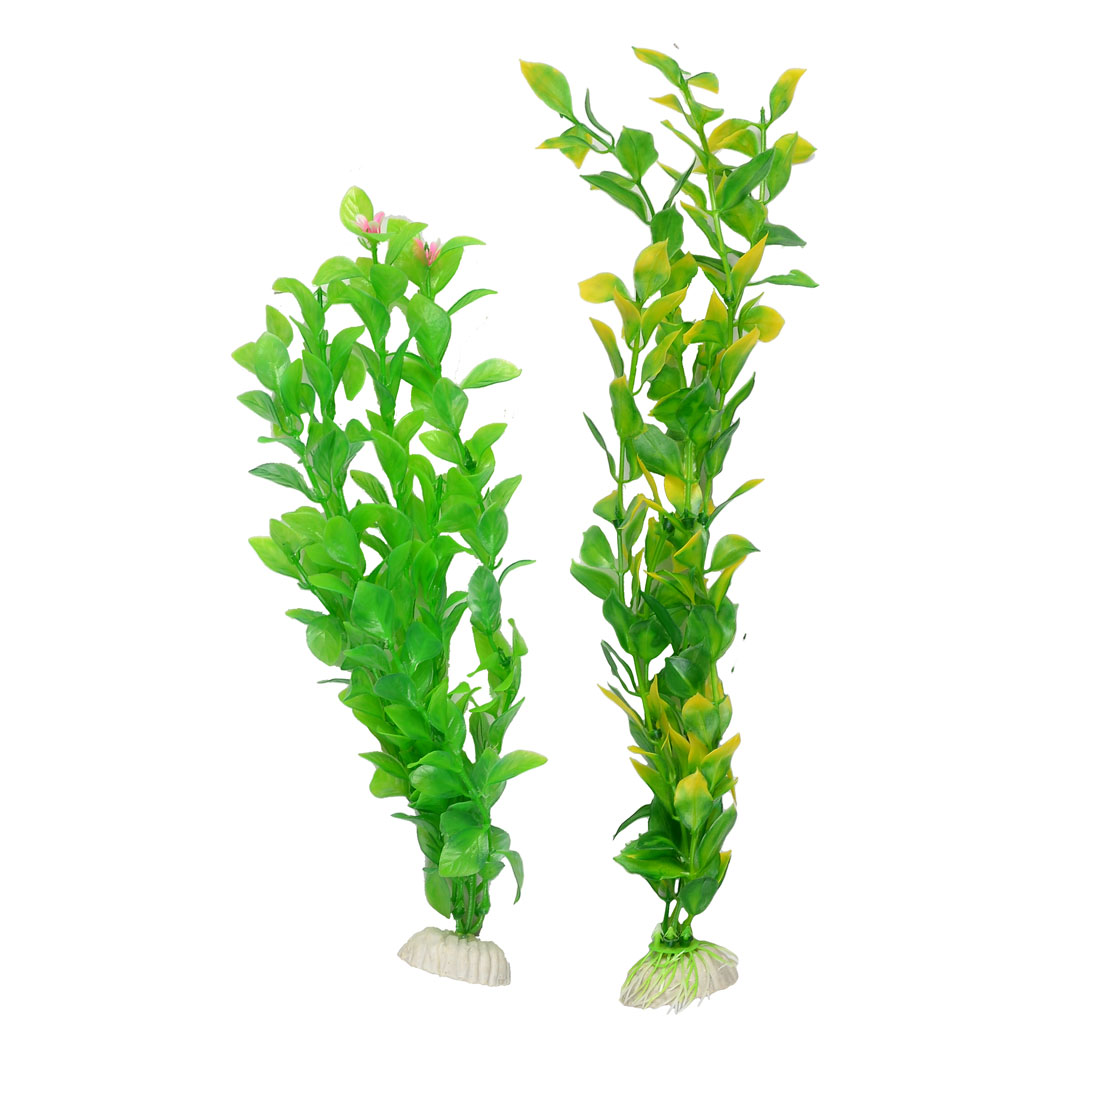 2 Pcs Oval Shaped Leaf Flower Embellished Aquarium Plastic Plant Ornament